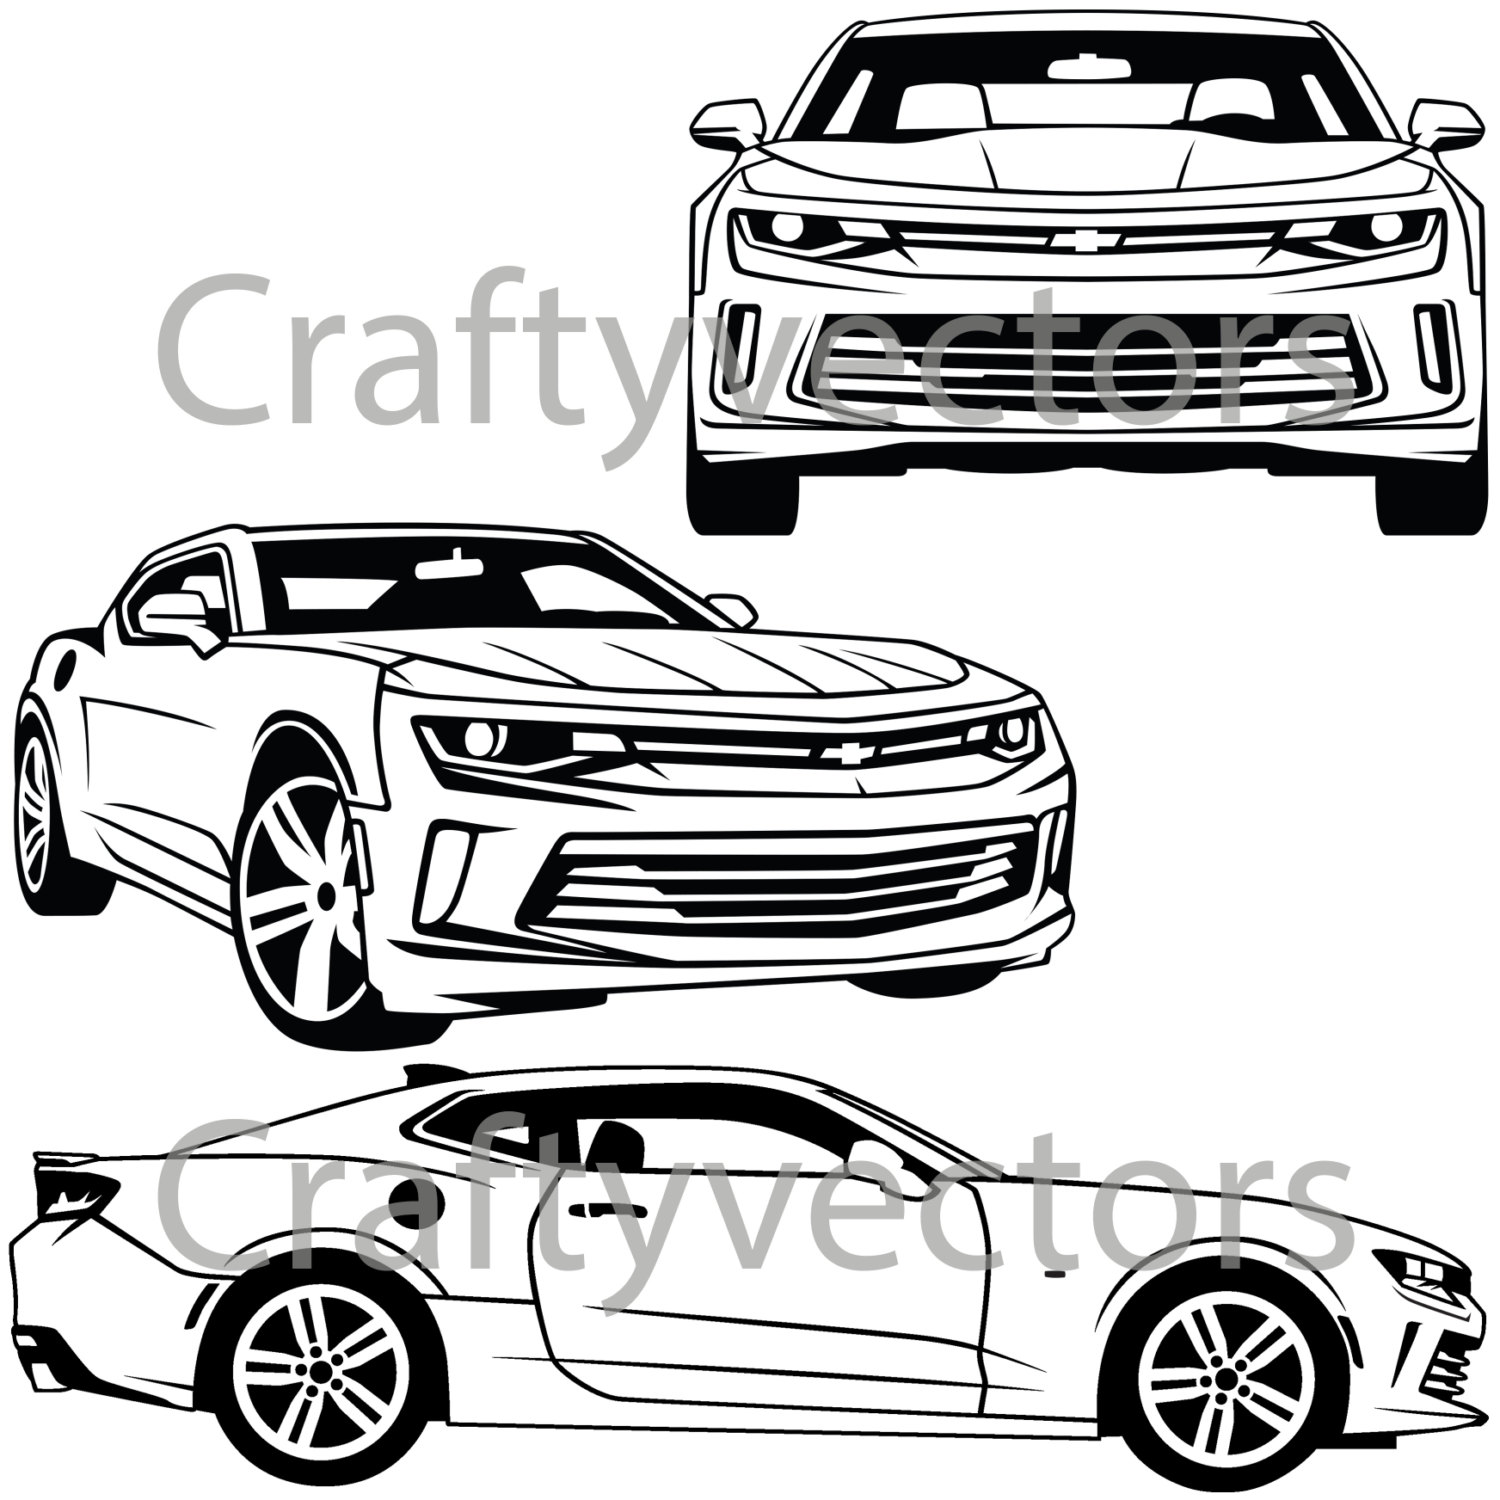 68 Camaro Drawing At Getdrawings